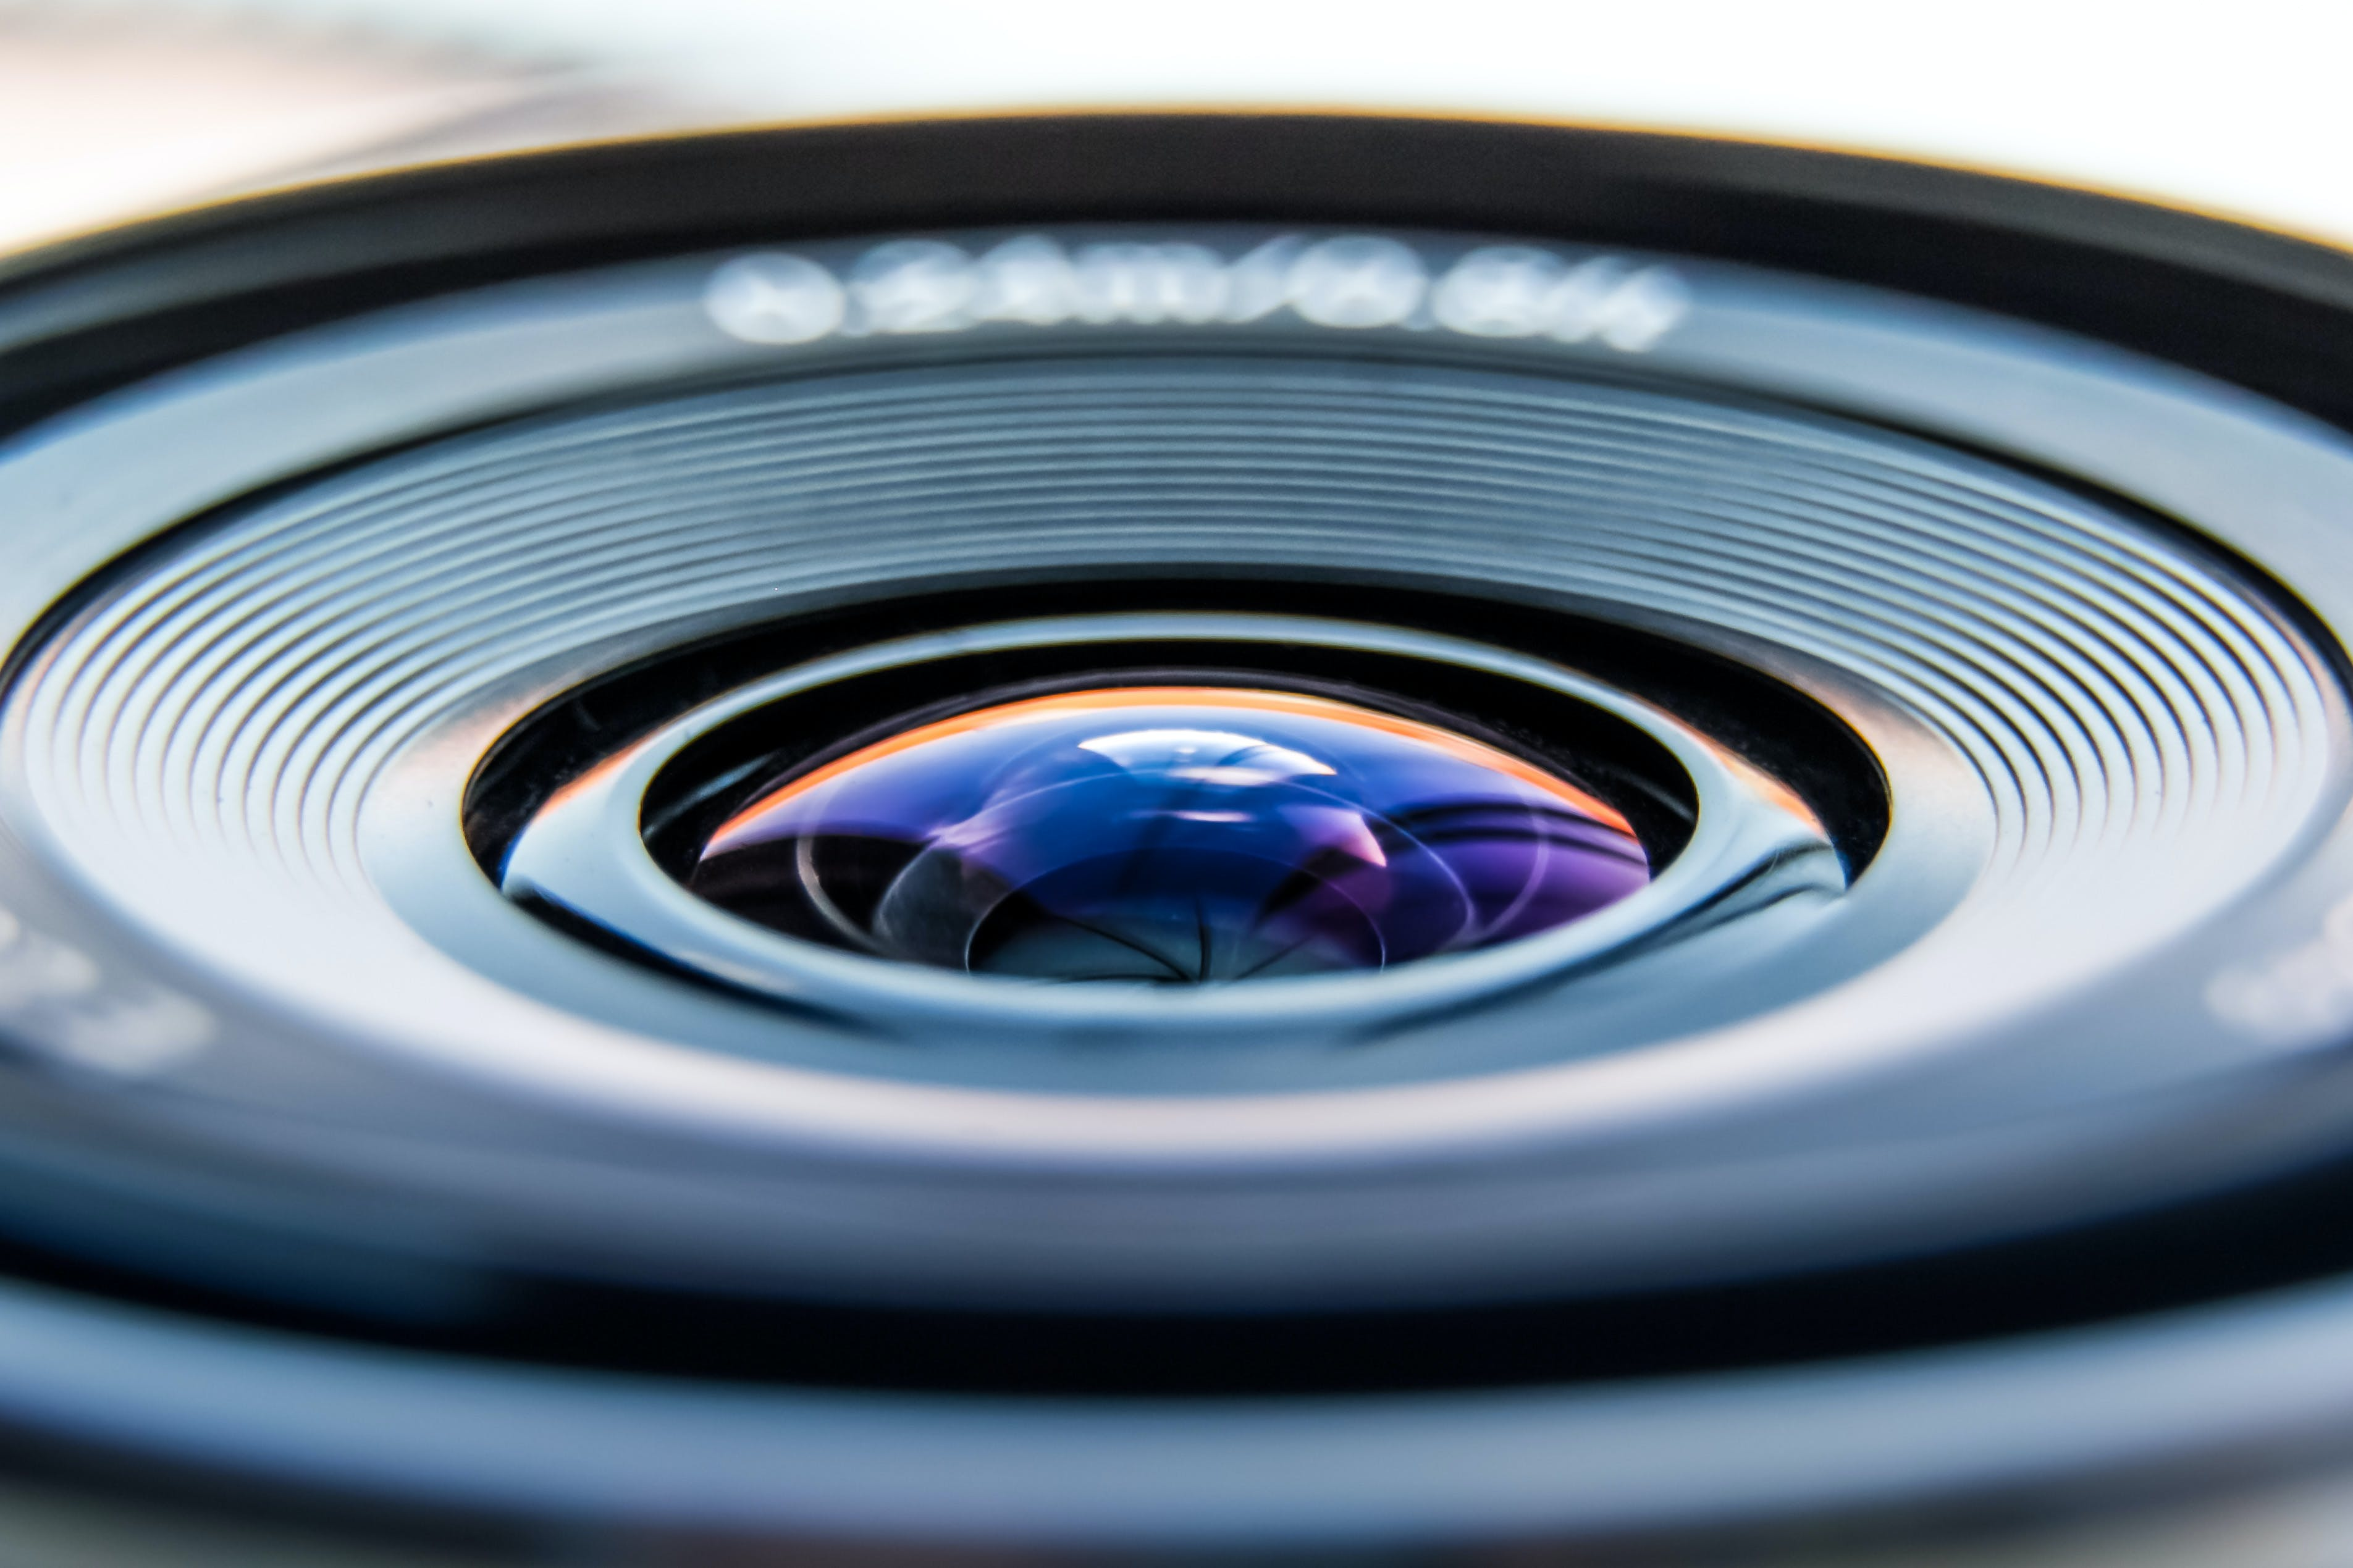 Black Camera Zoom Lens in Close-up Photography